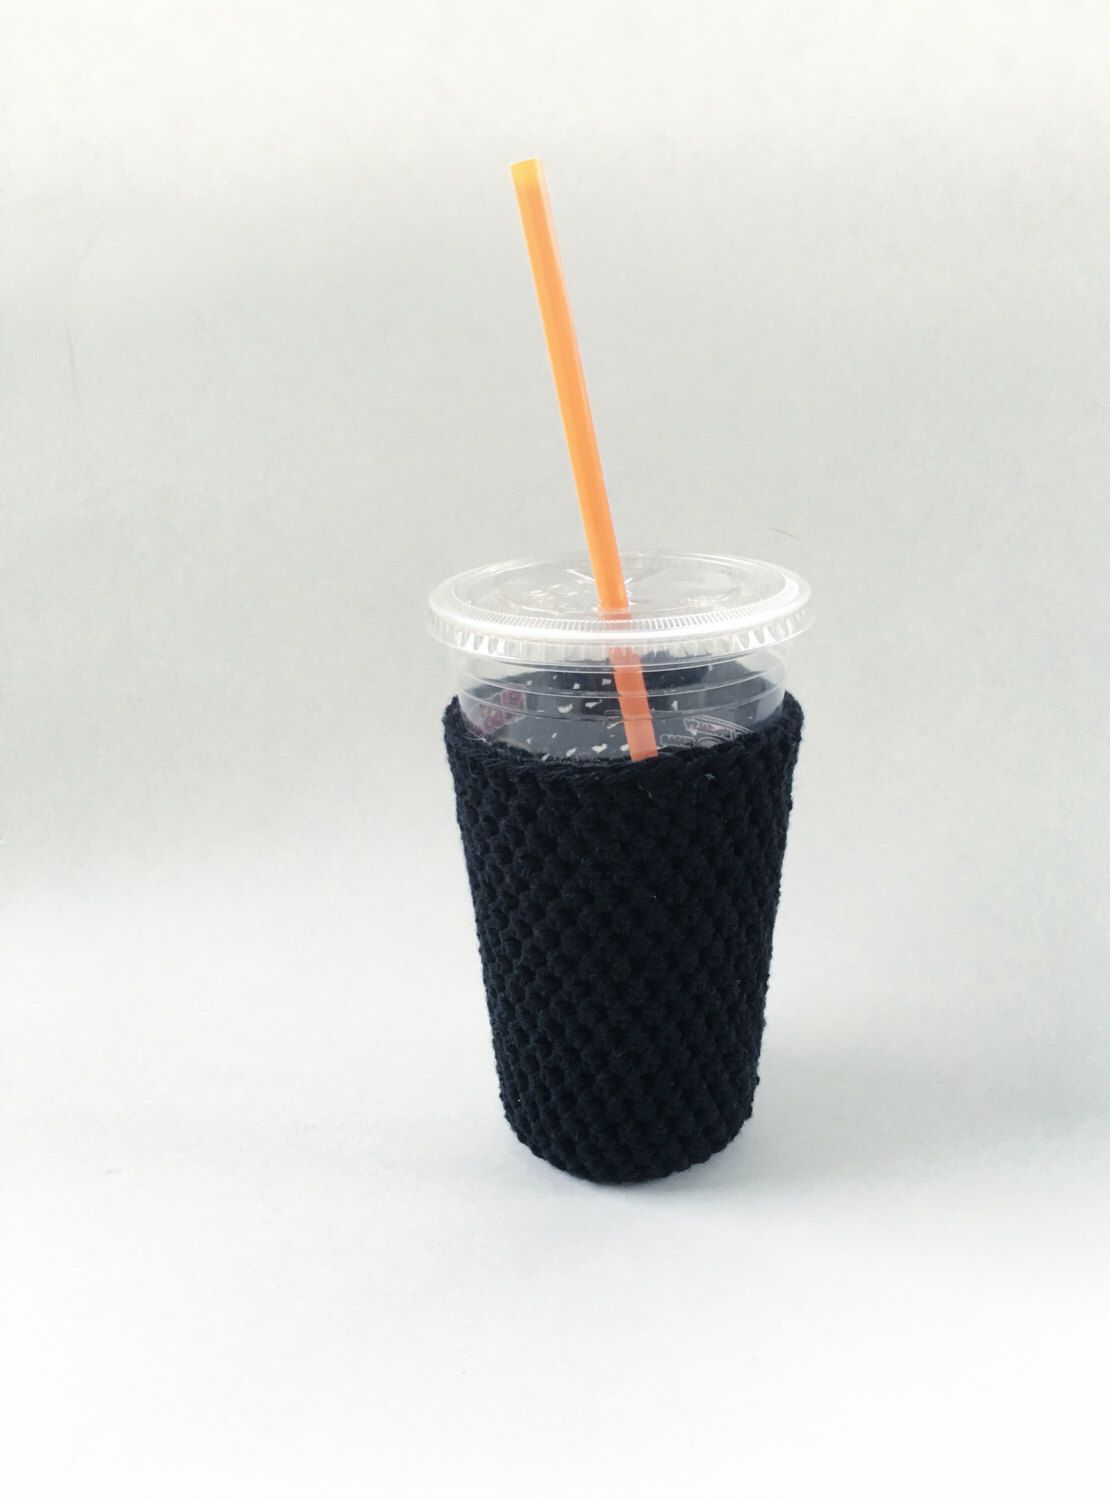 iced medium coffee cozy. black coffee cozy. crochet cup cozy. Cotton cup sleeve. Eco friendly cup sleeve. Summer drink cozy. iced cup cozy. by SalemStyle on Etsy https://www.etsy.com/listing/287252253/iced-medium-coffee-cozy-black-coffee